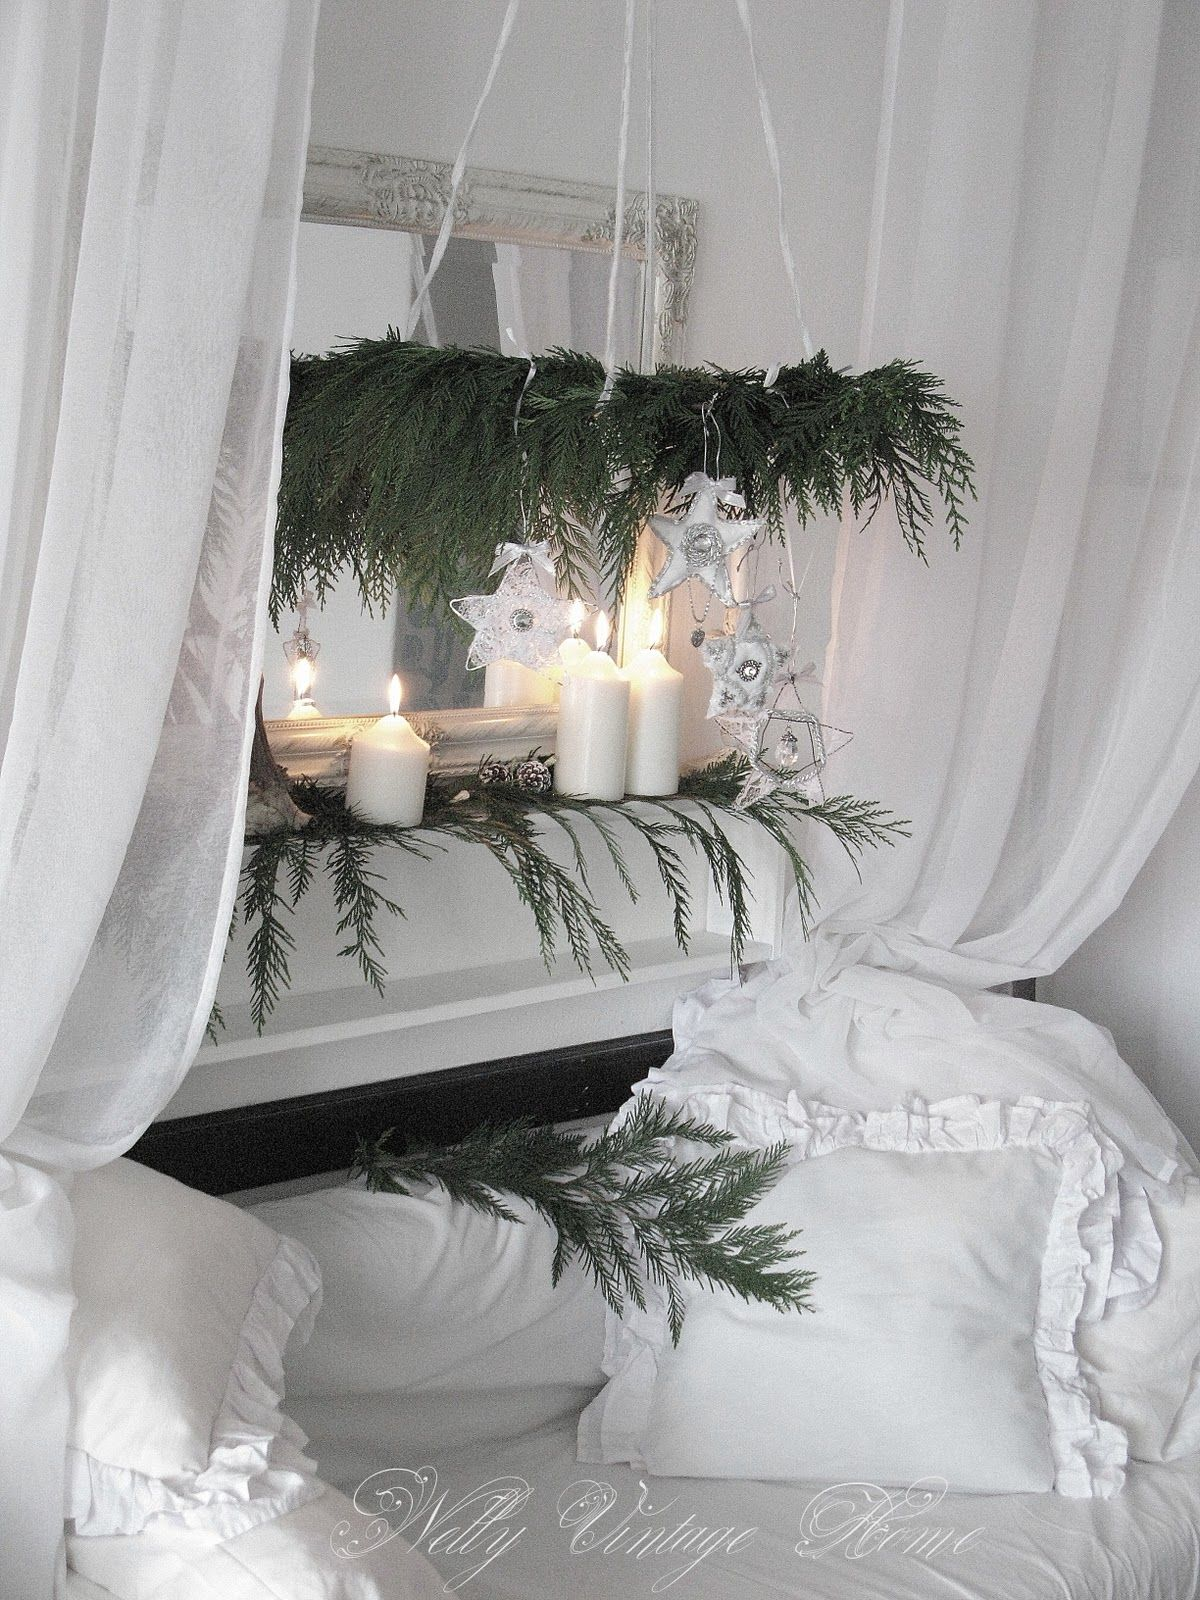 White on white is just delightful with a touch of evergreen